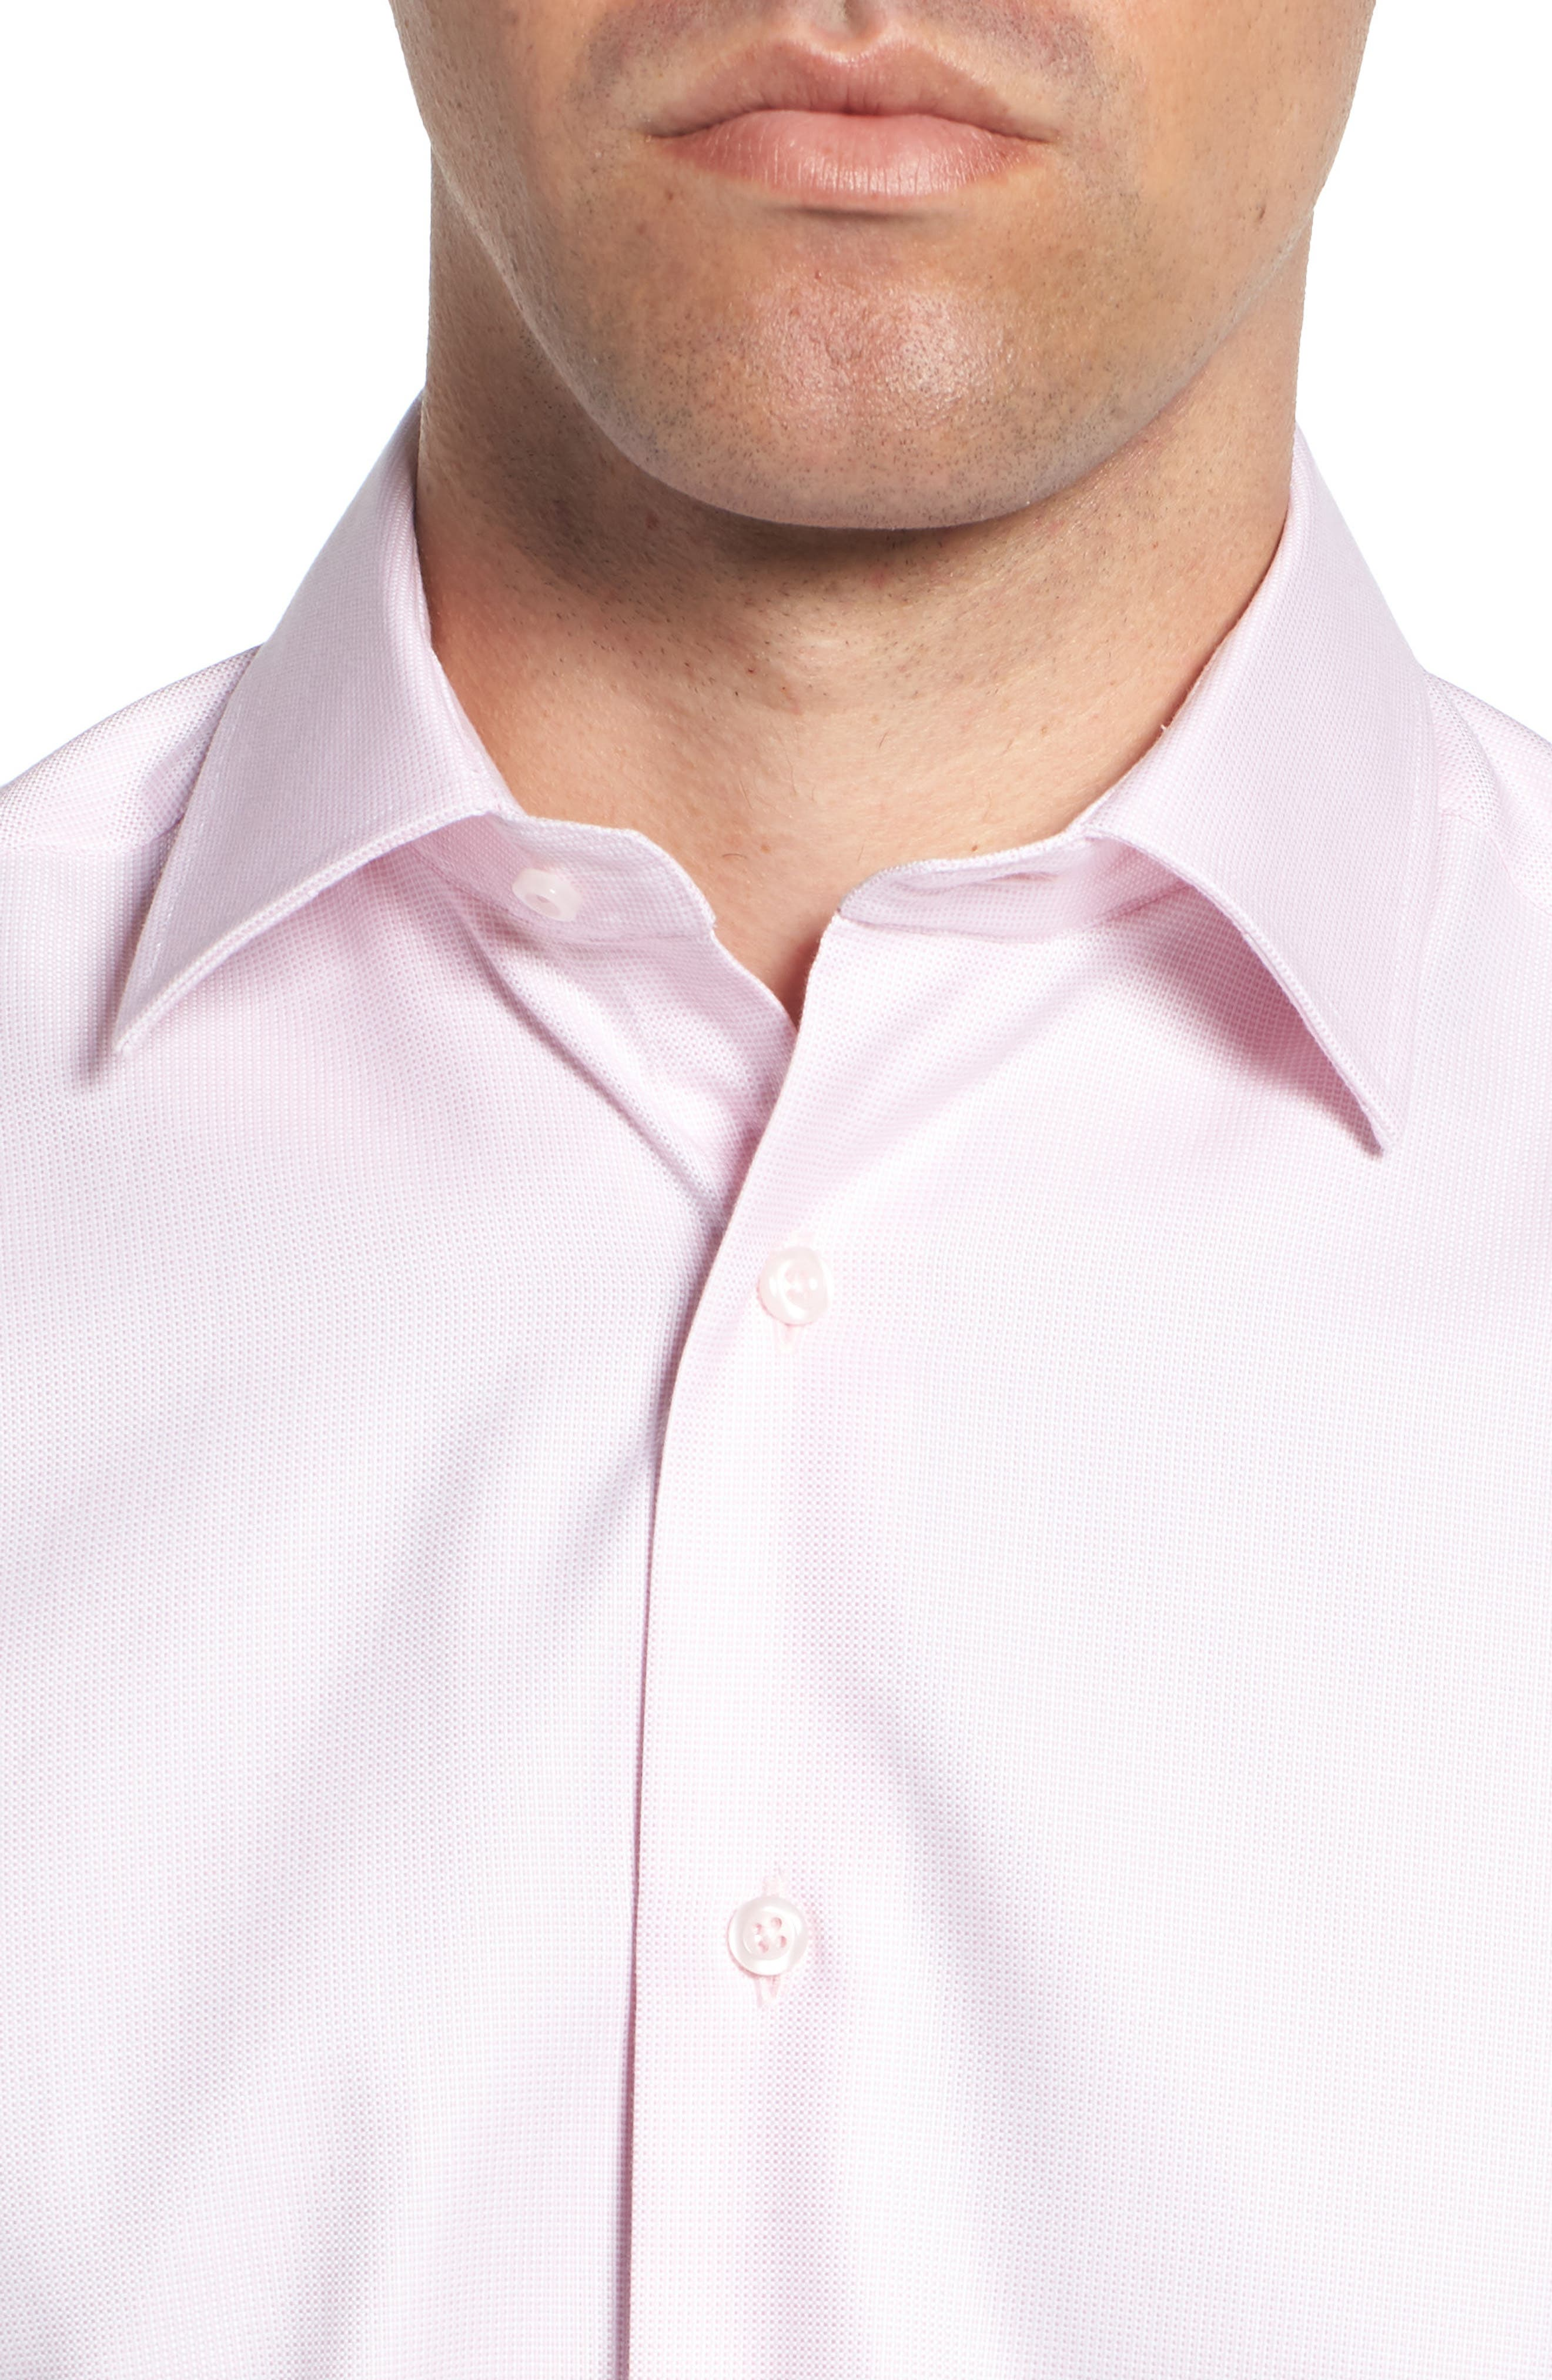 Trim Fit Solid Dress Shirt,                             Alternate thumbnail 2, color,                             PINK